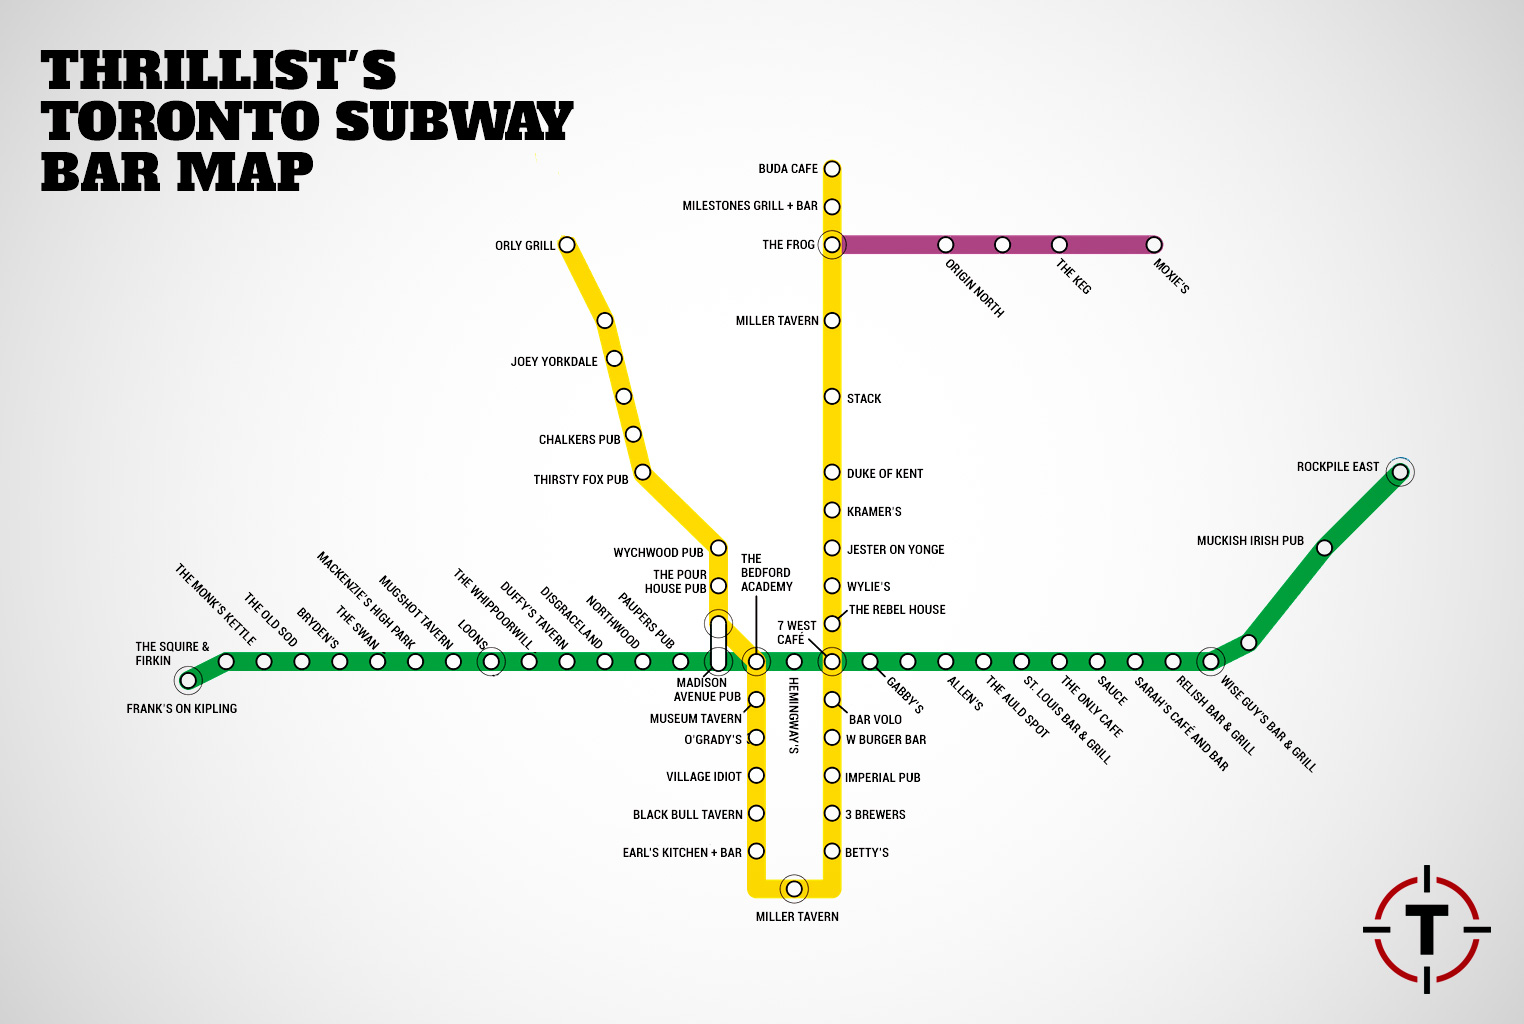 Toronto Subway Map.Toronto Subway Map With Bars For Every Stop Thrillist